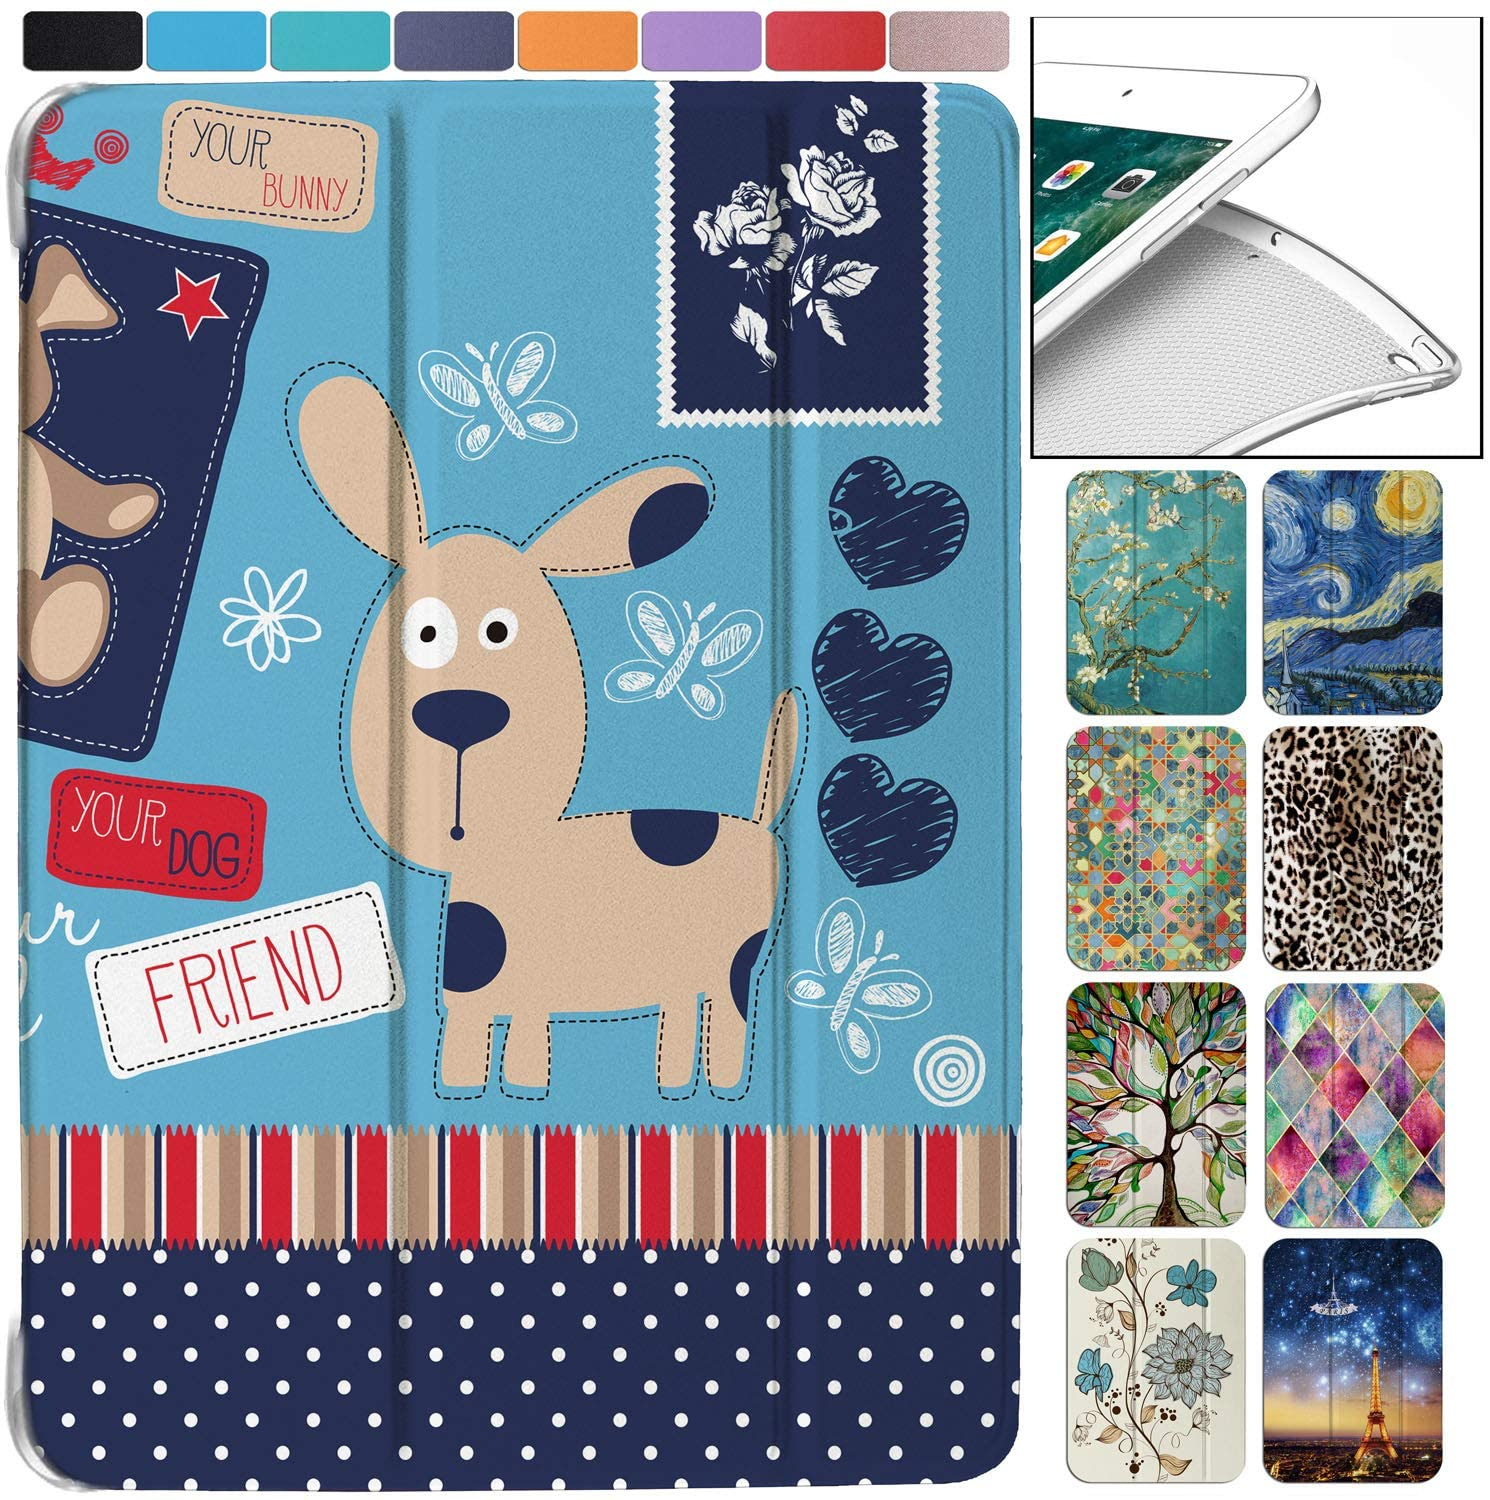 DuraSafe Cases for iPad Mini 5th Gen 2019-7.9 MUQY2LL/A MUQW2LL/A MUQX2LL/A MUU62LL/A MUU32LL/A Ultra Slim Energy Saving Printed Case with Adjustable Stand Feature and Sleek Design - Puppy Friend